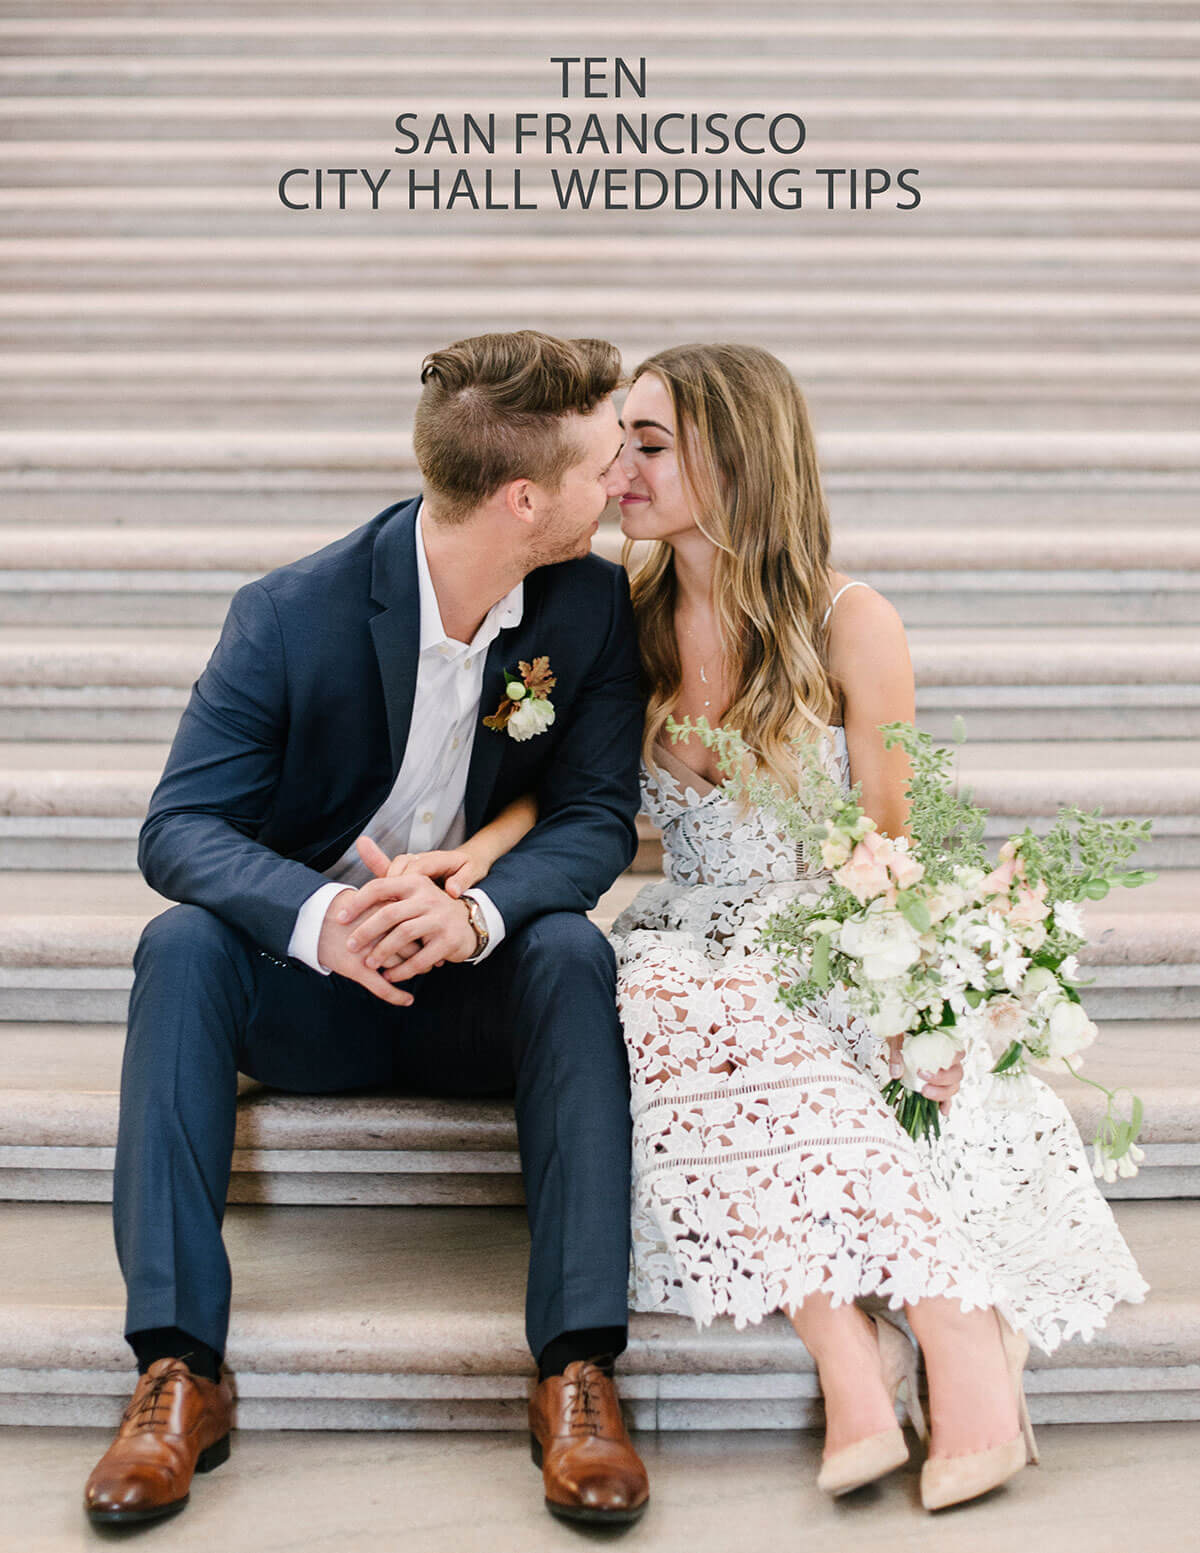 Ten city hall wedding tips melanie duerkopp cityhallblogpoststarter junglespirit Gallery